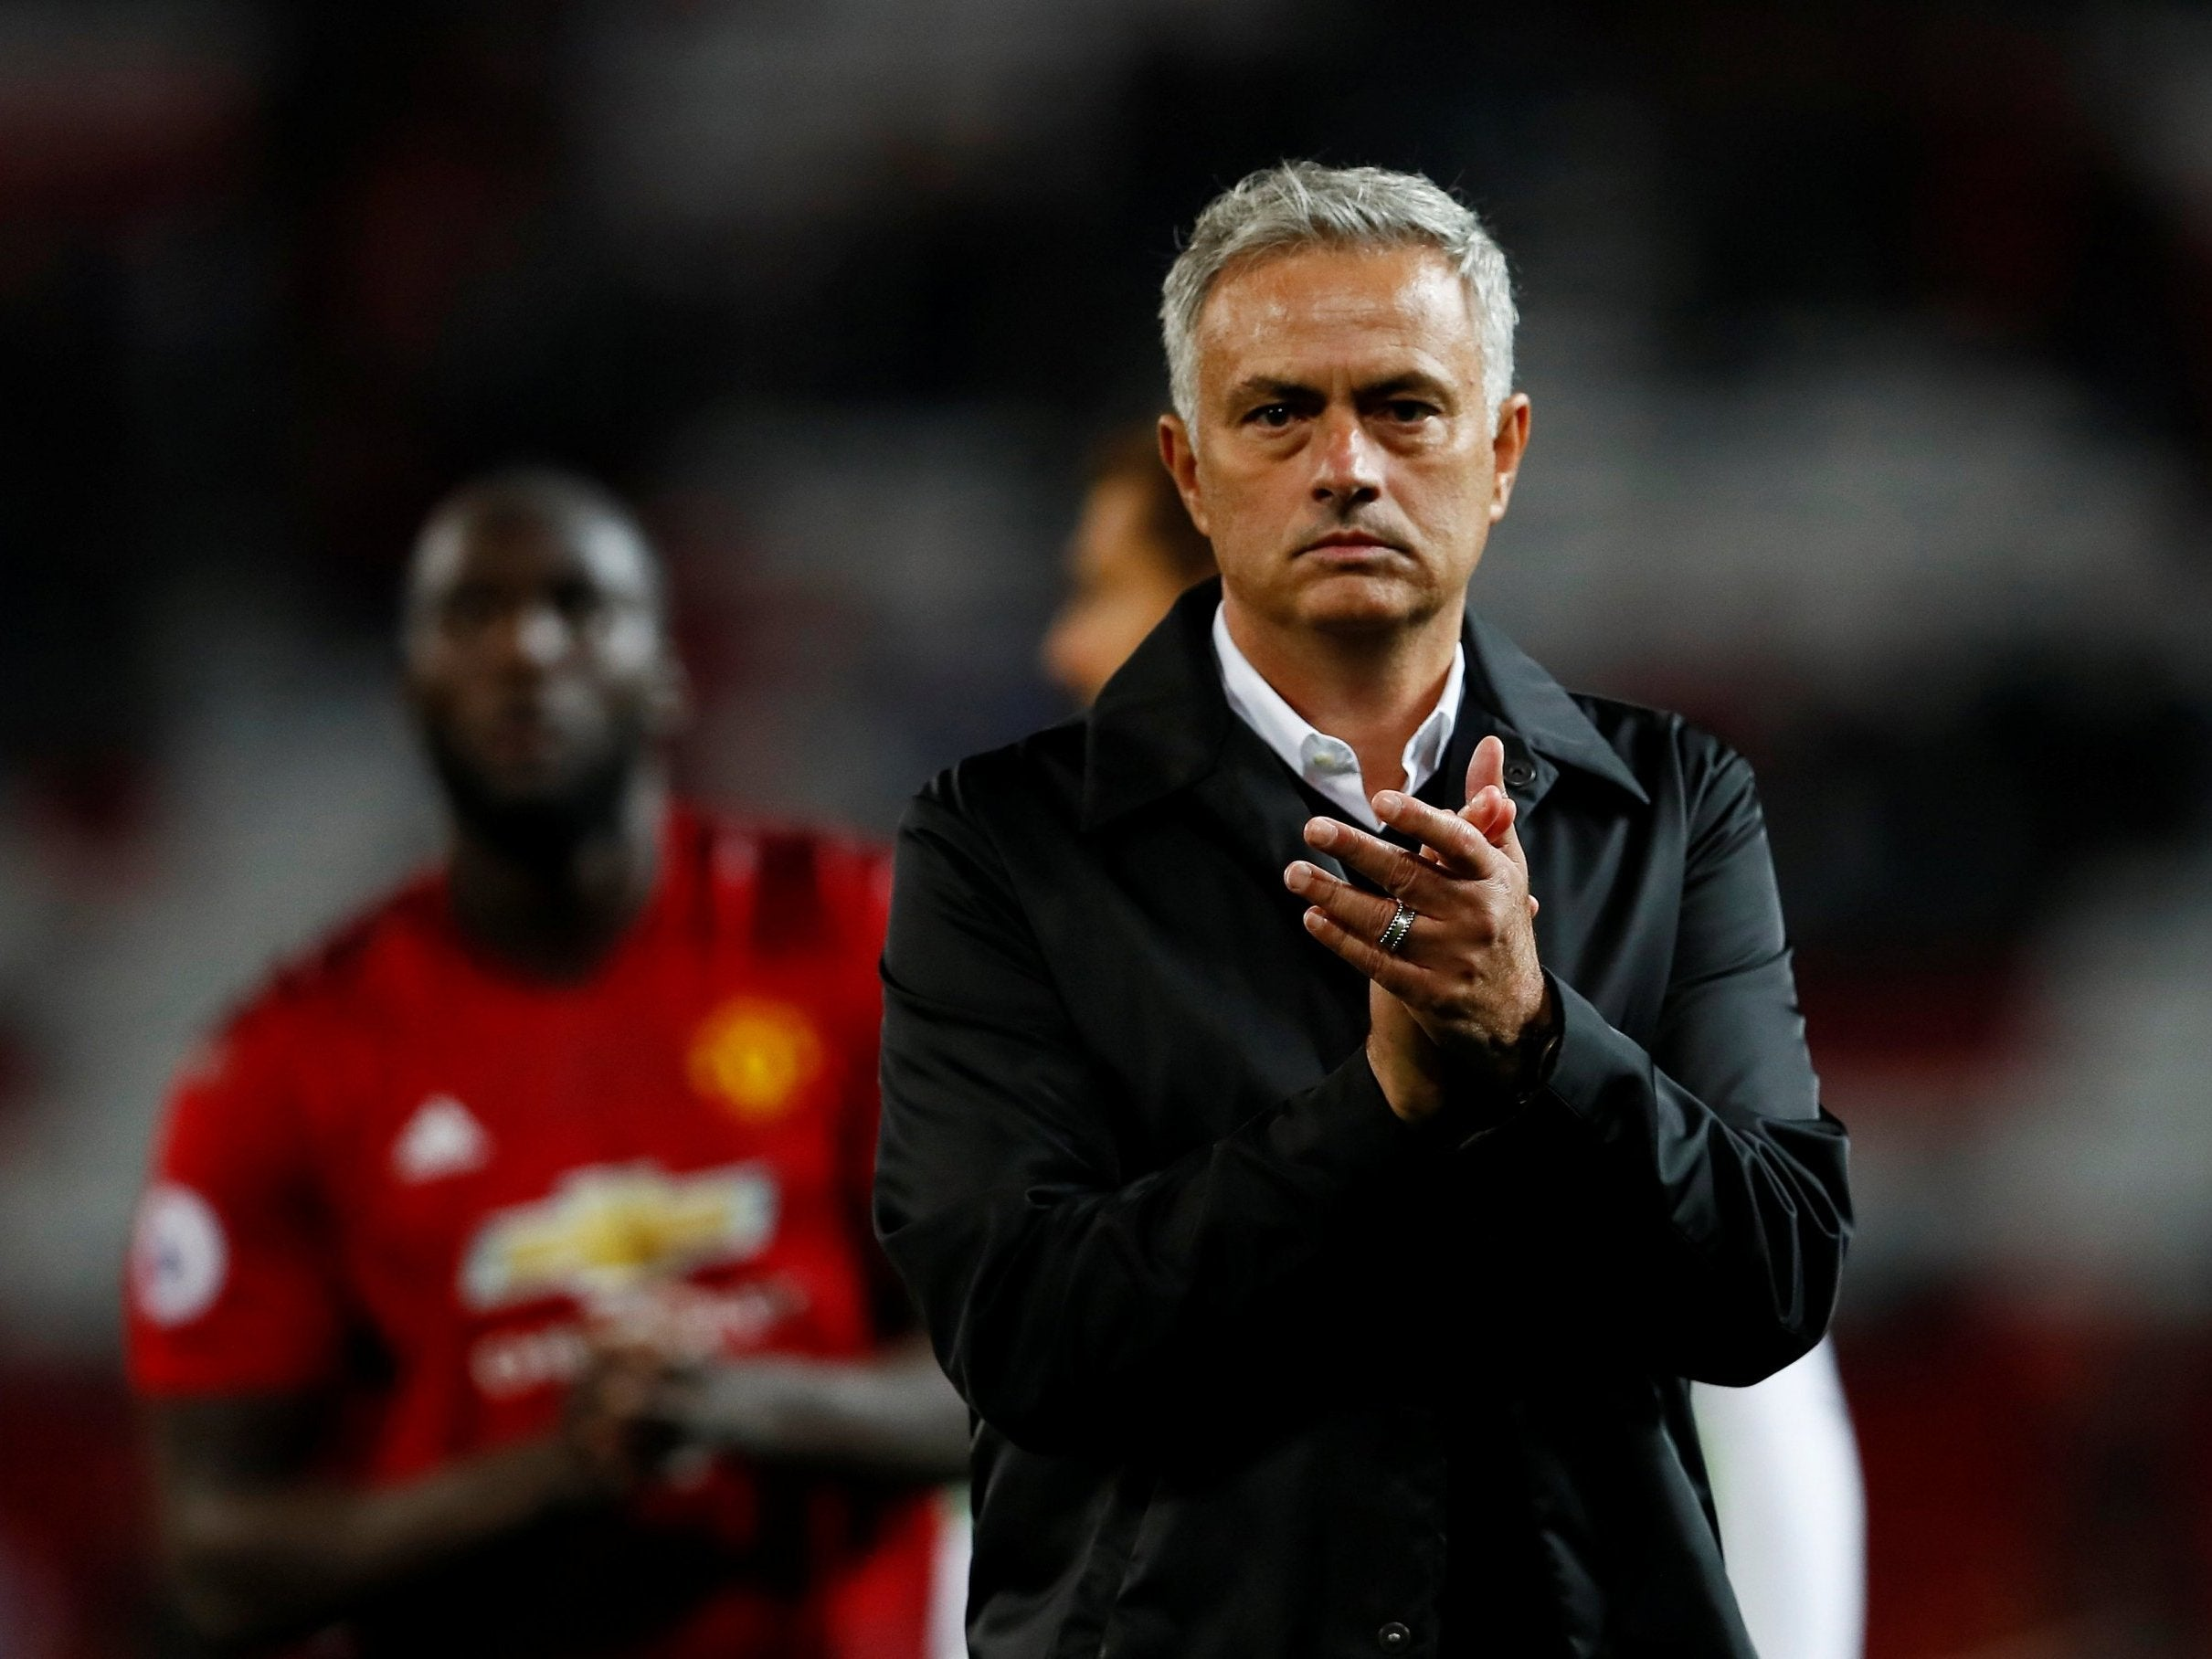 Watford vs Manchester United: What time does it start, TV channel, how can I watch it, odds, team news, prediction